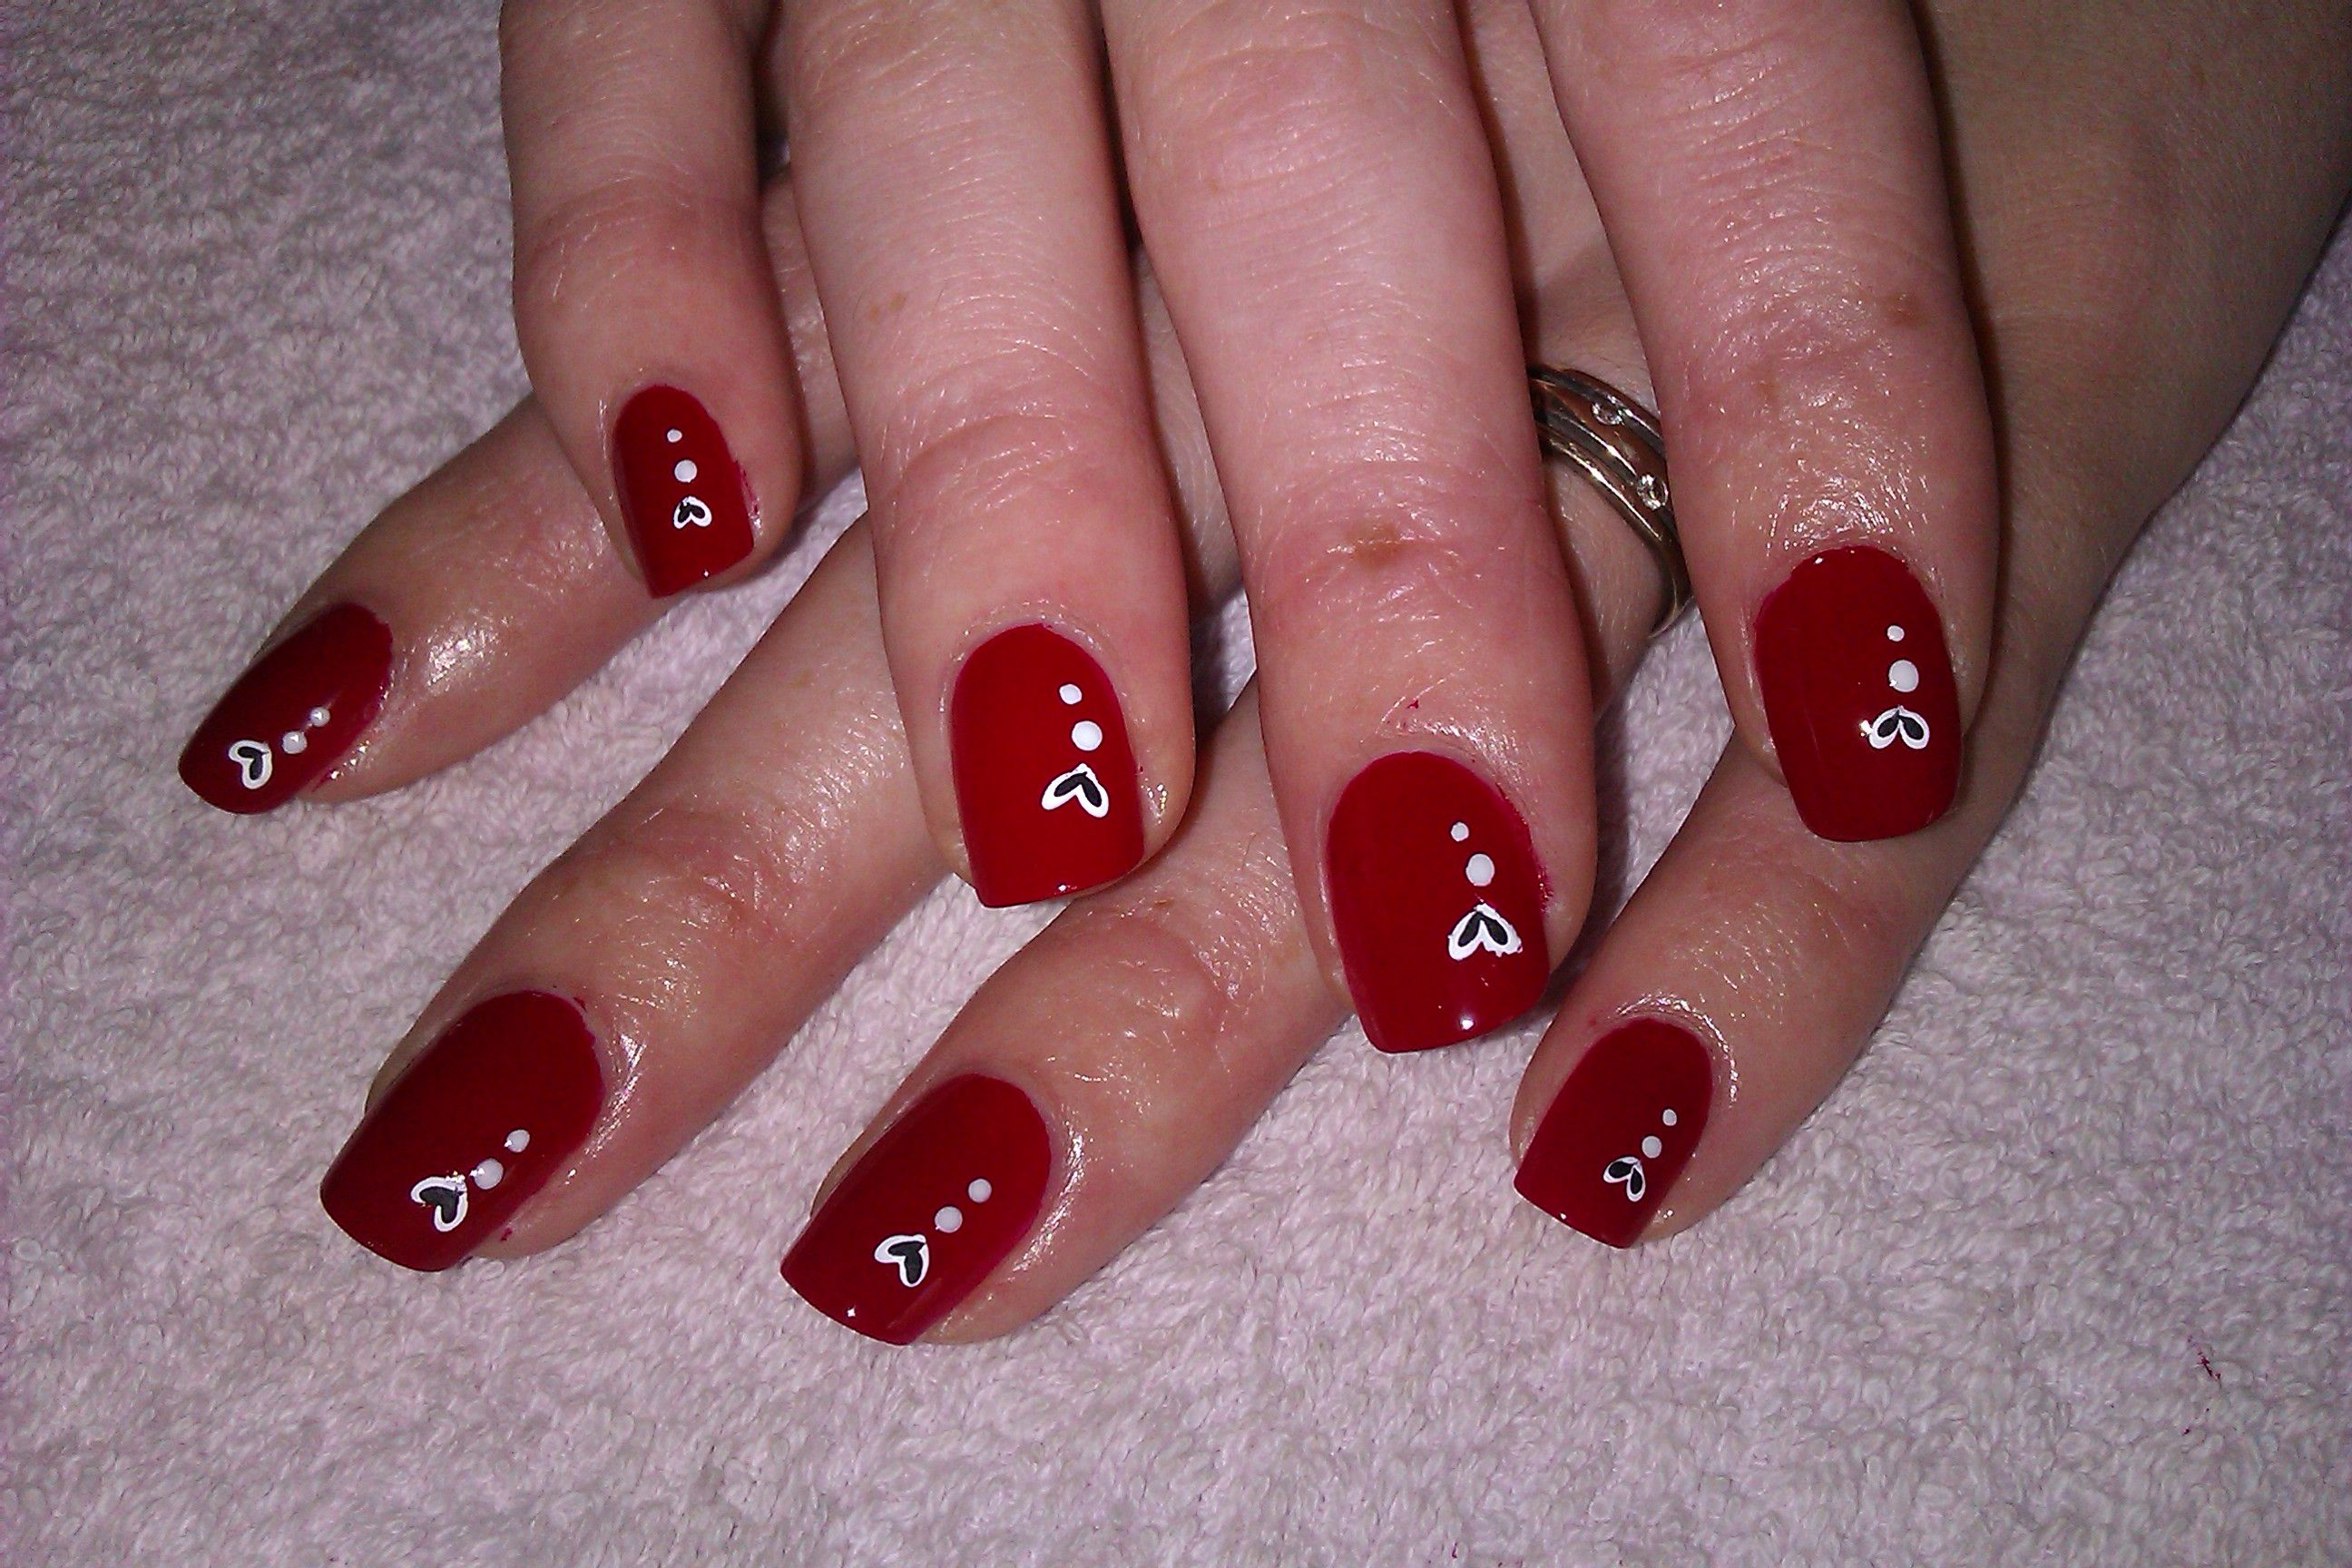 White And Red Nail Designs Images Nail Art Designs Red N Black Nail Designs  Nail 163